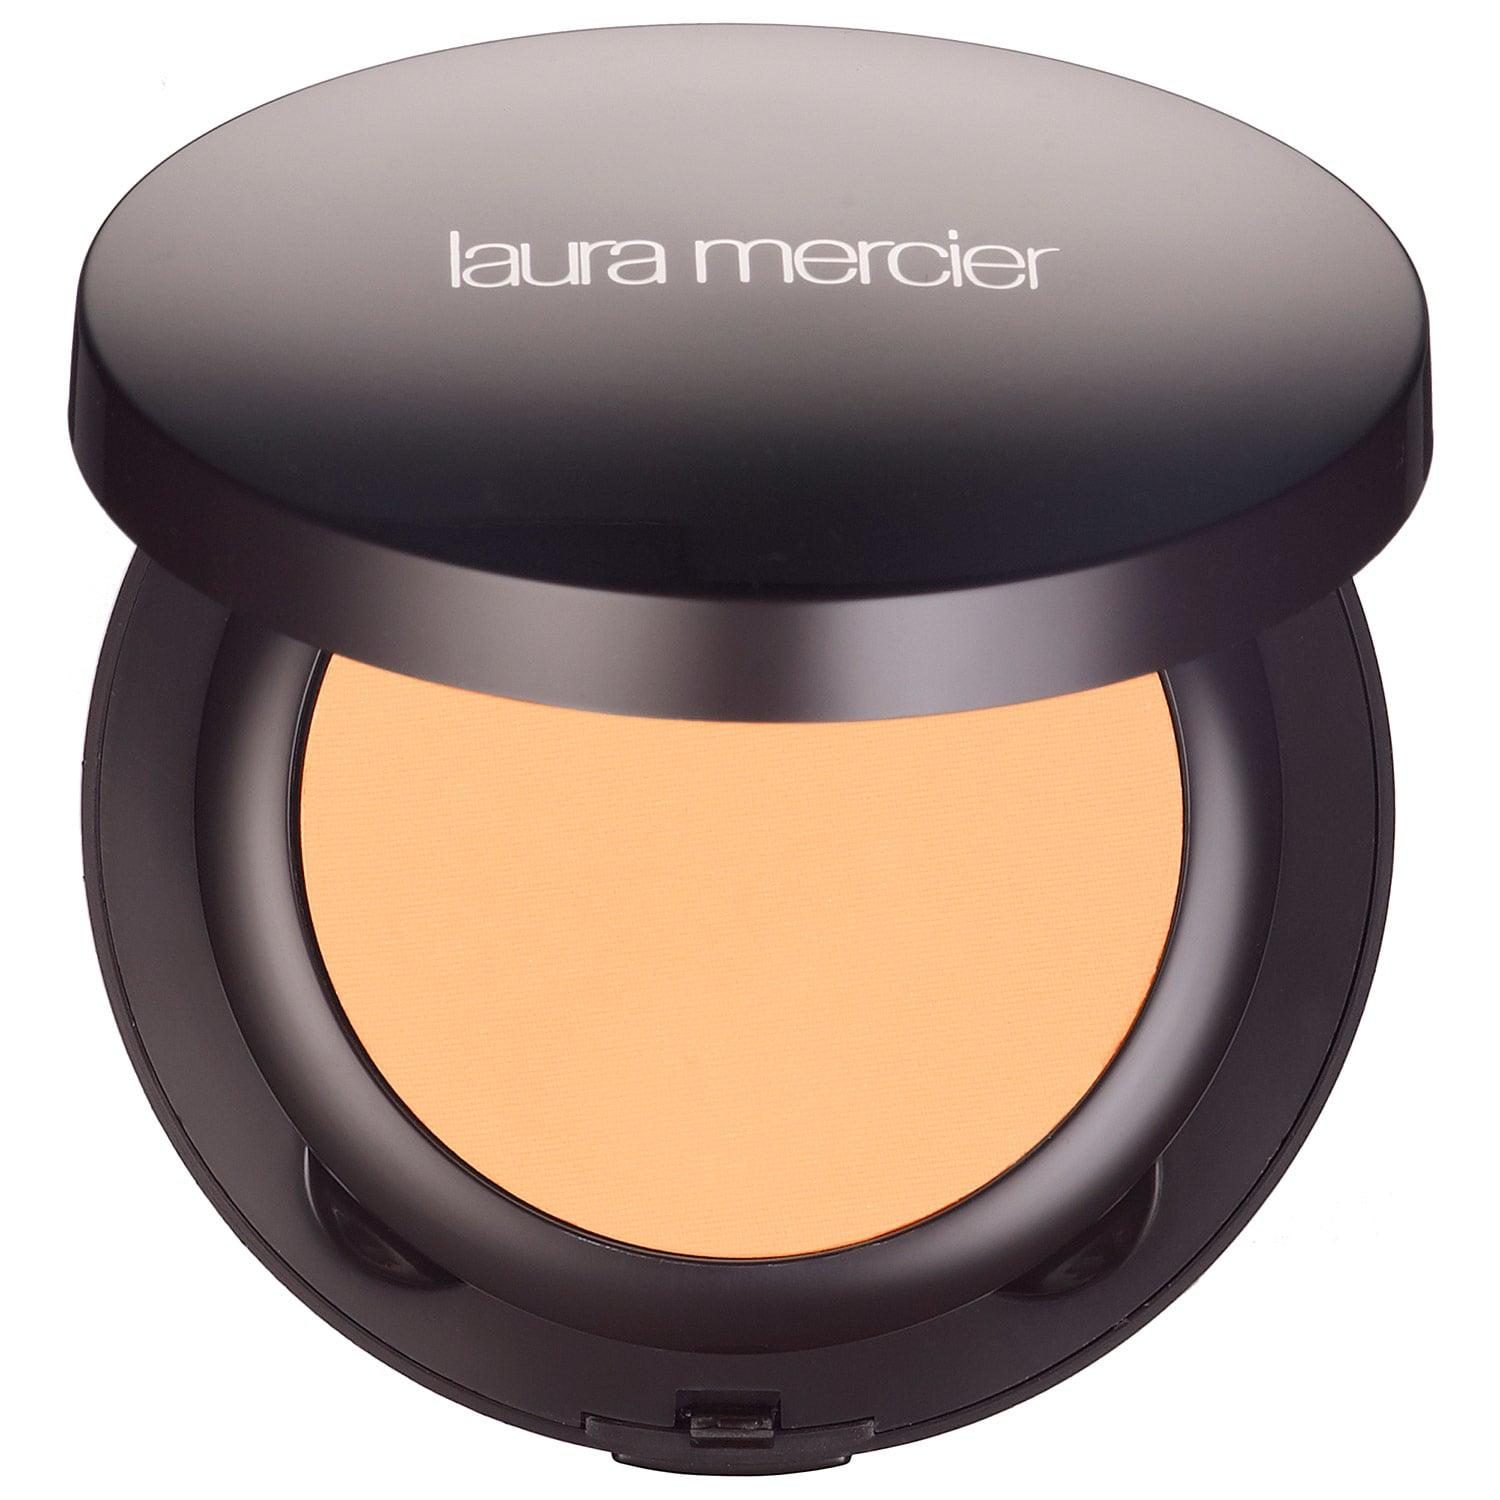 Laura Mercier Powder Foundation No. 6